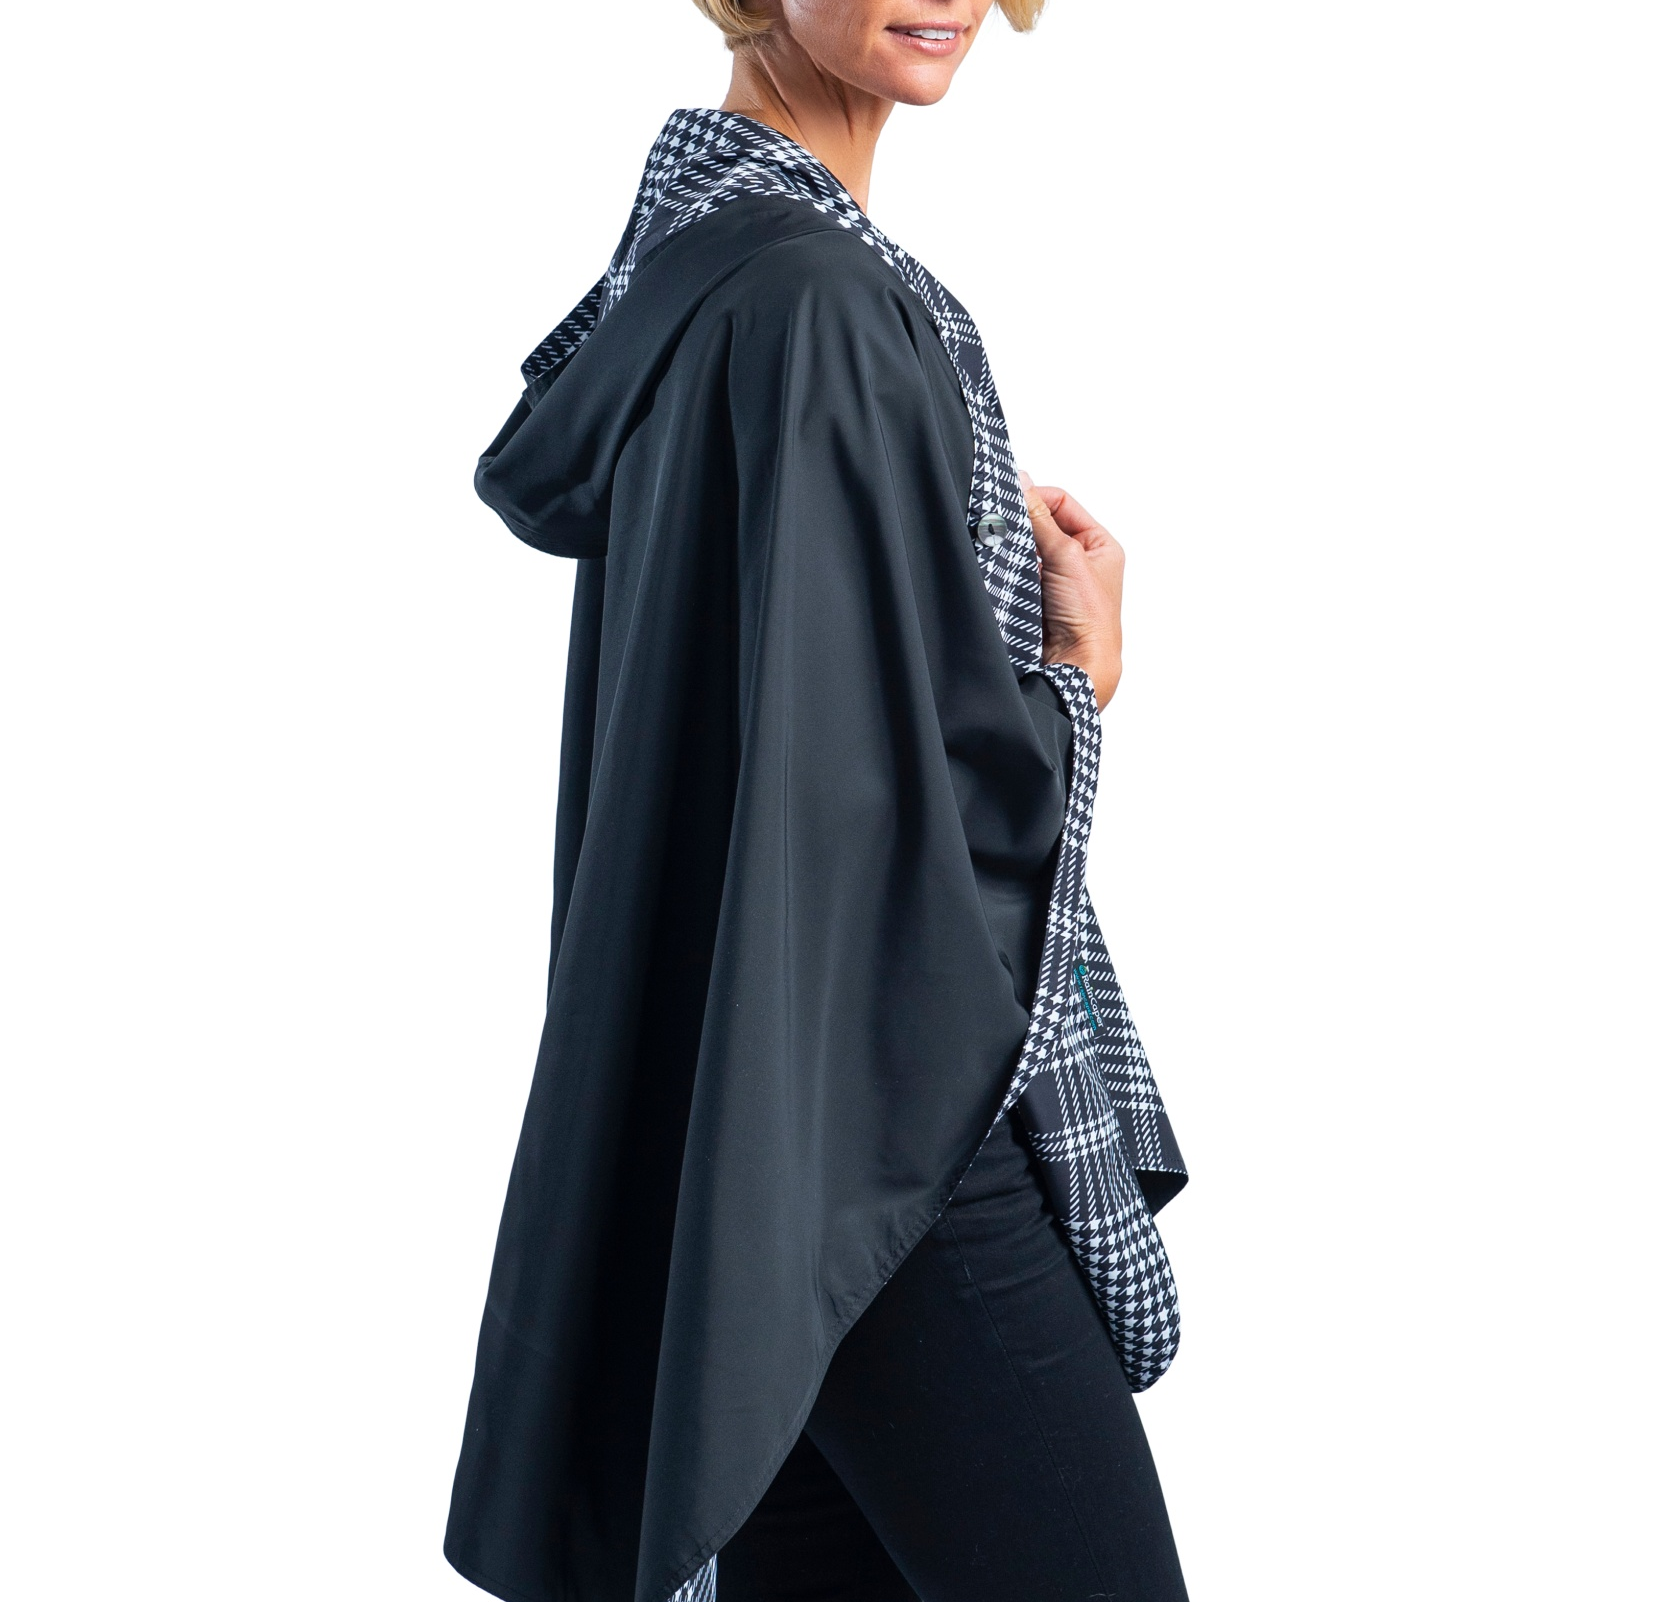 Reversible Travel Cape in Black & White Houndstooth Plaid